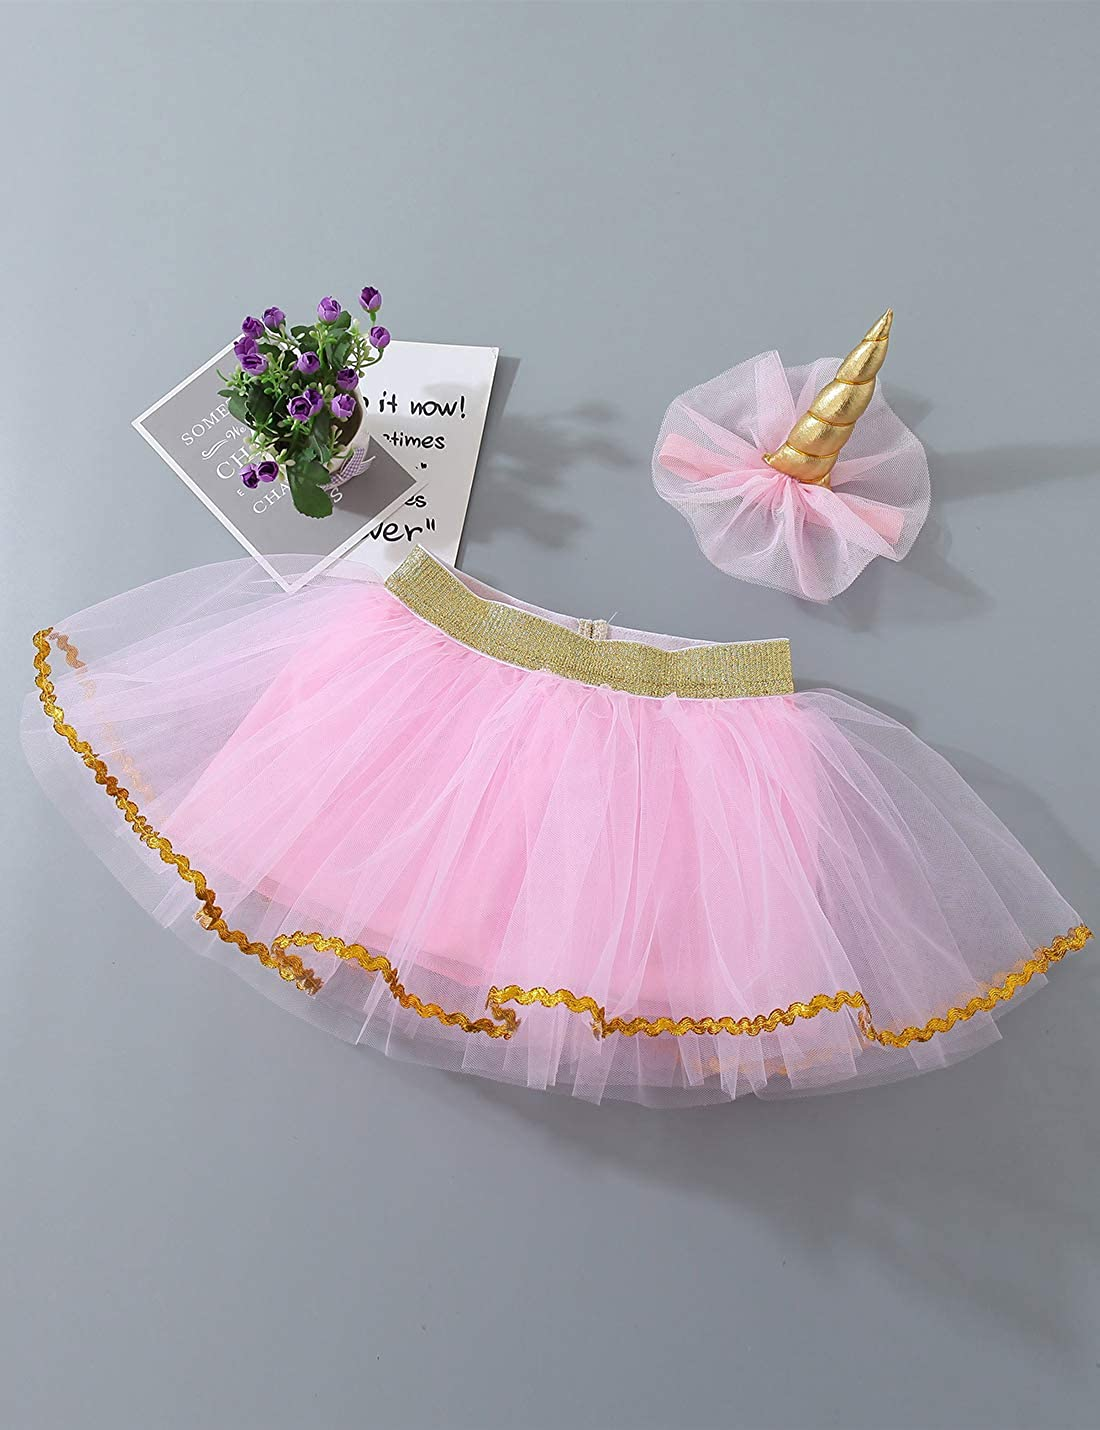 Baby Girls Tutu Skirt Sets Tulle Newborn Birthday Photo Props Outfits with Headband 0-2T